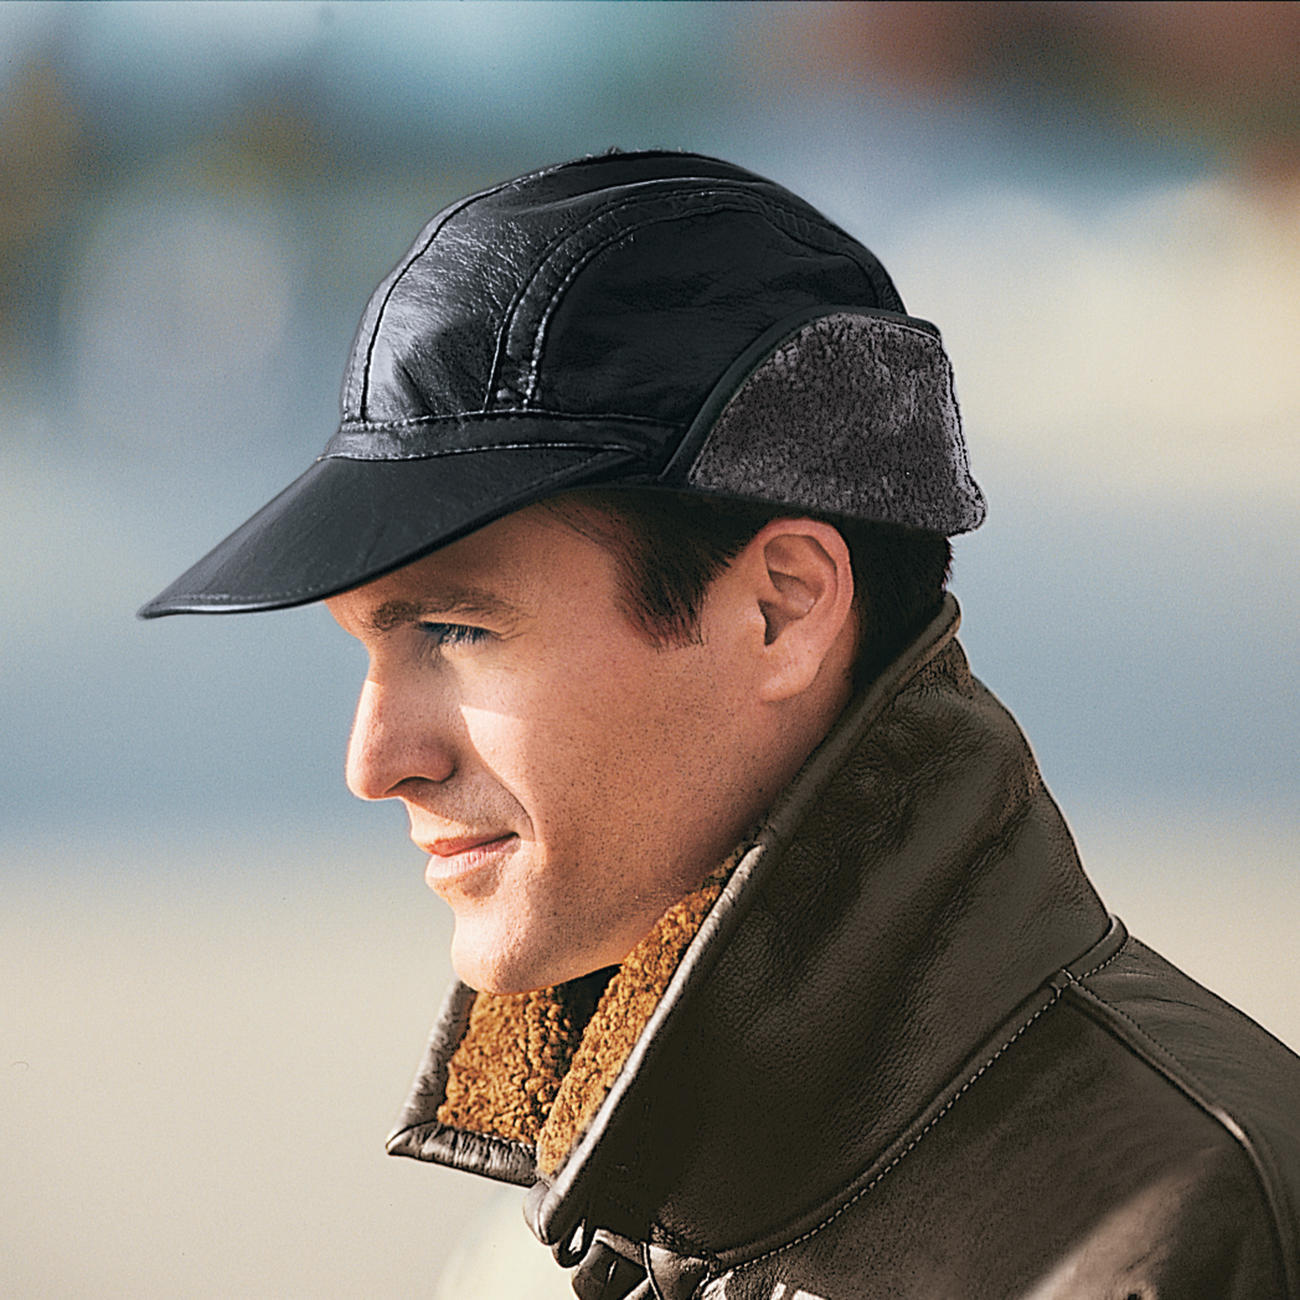 f894a36f4c0 Sheepskin Hat. Sheepskin Hat - Rediscovered  The winter headgear worn by  the elite of the US air